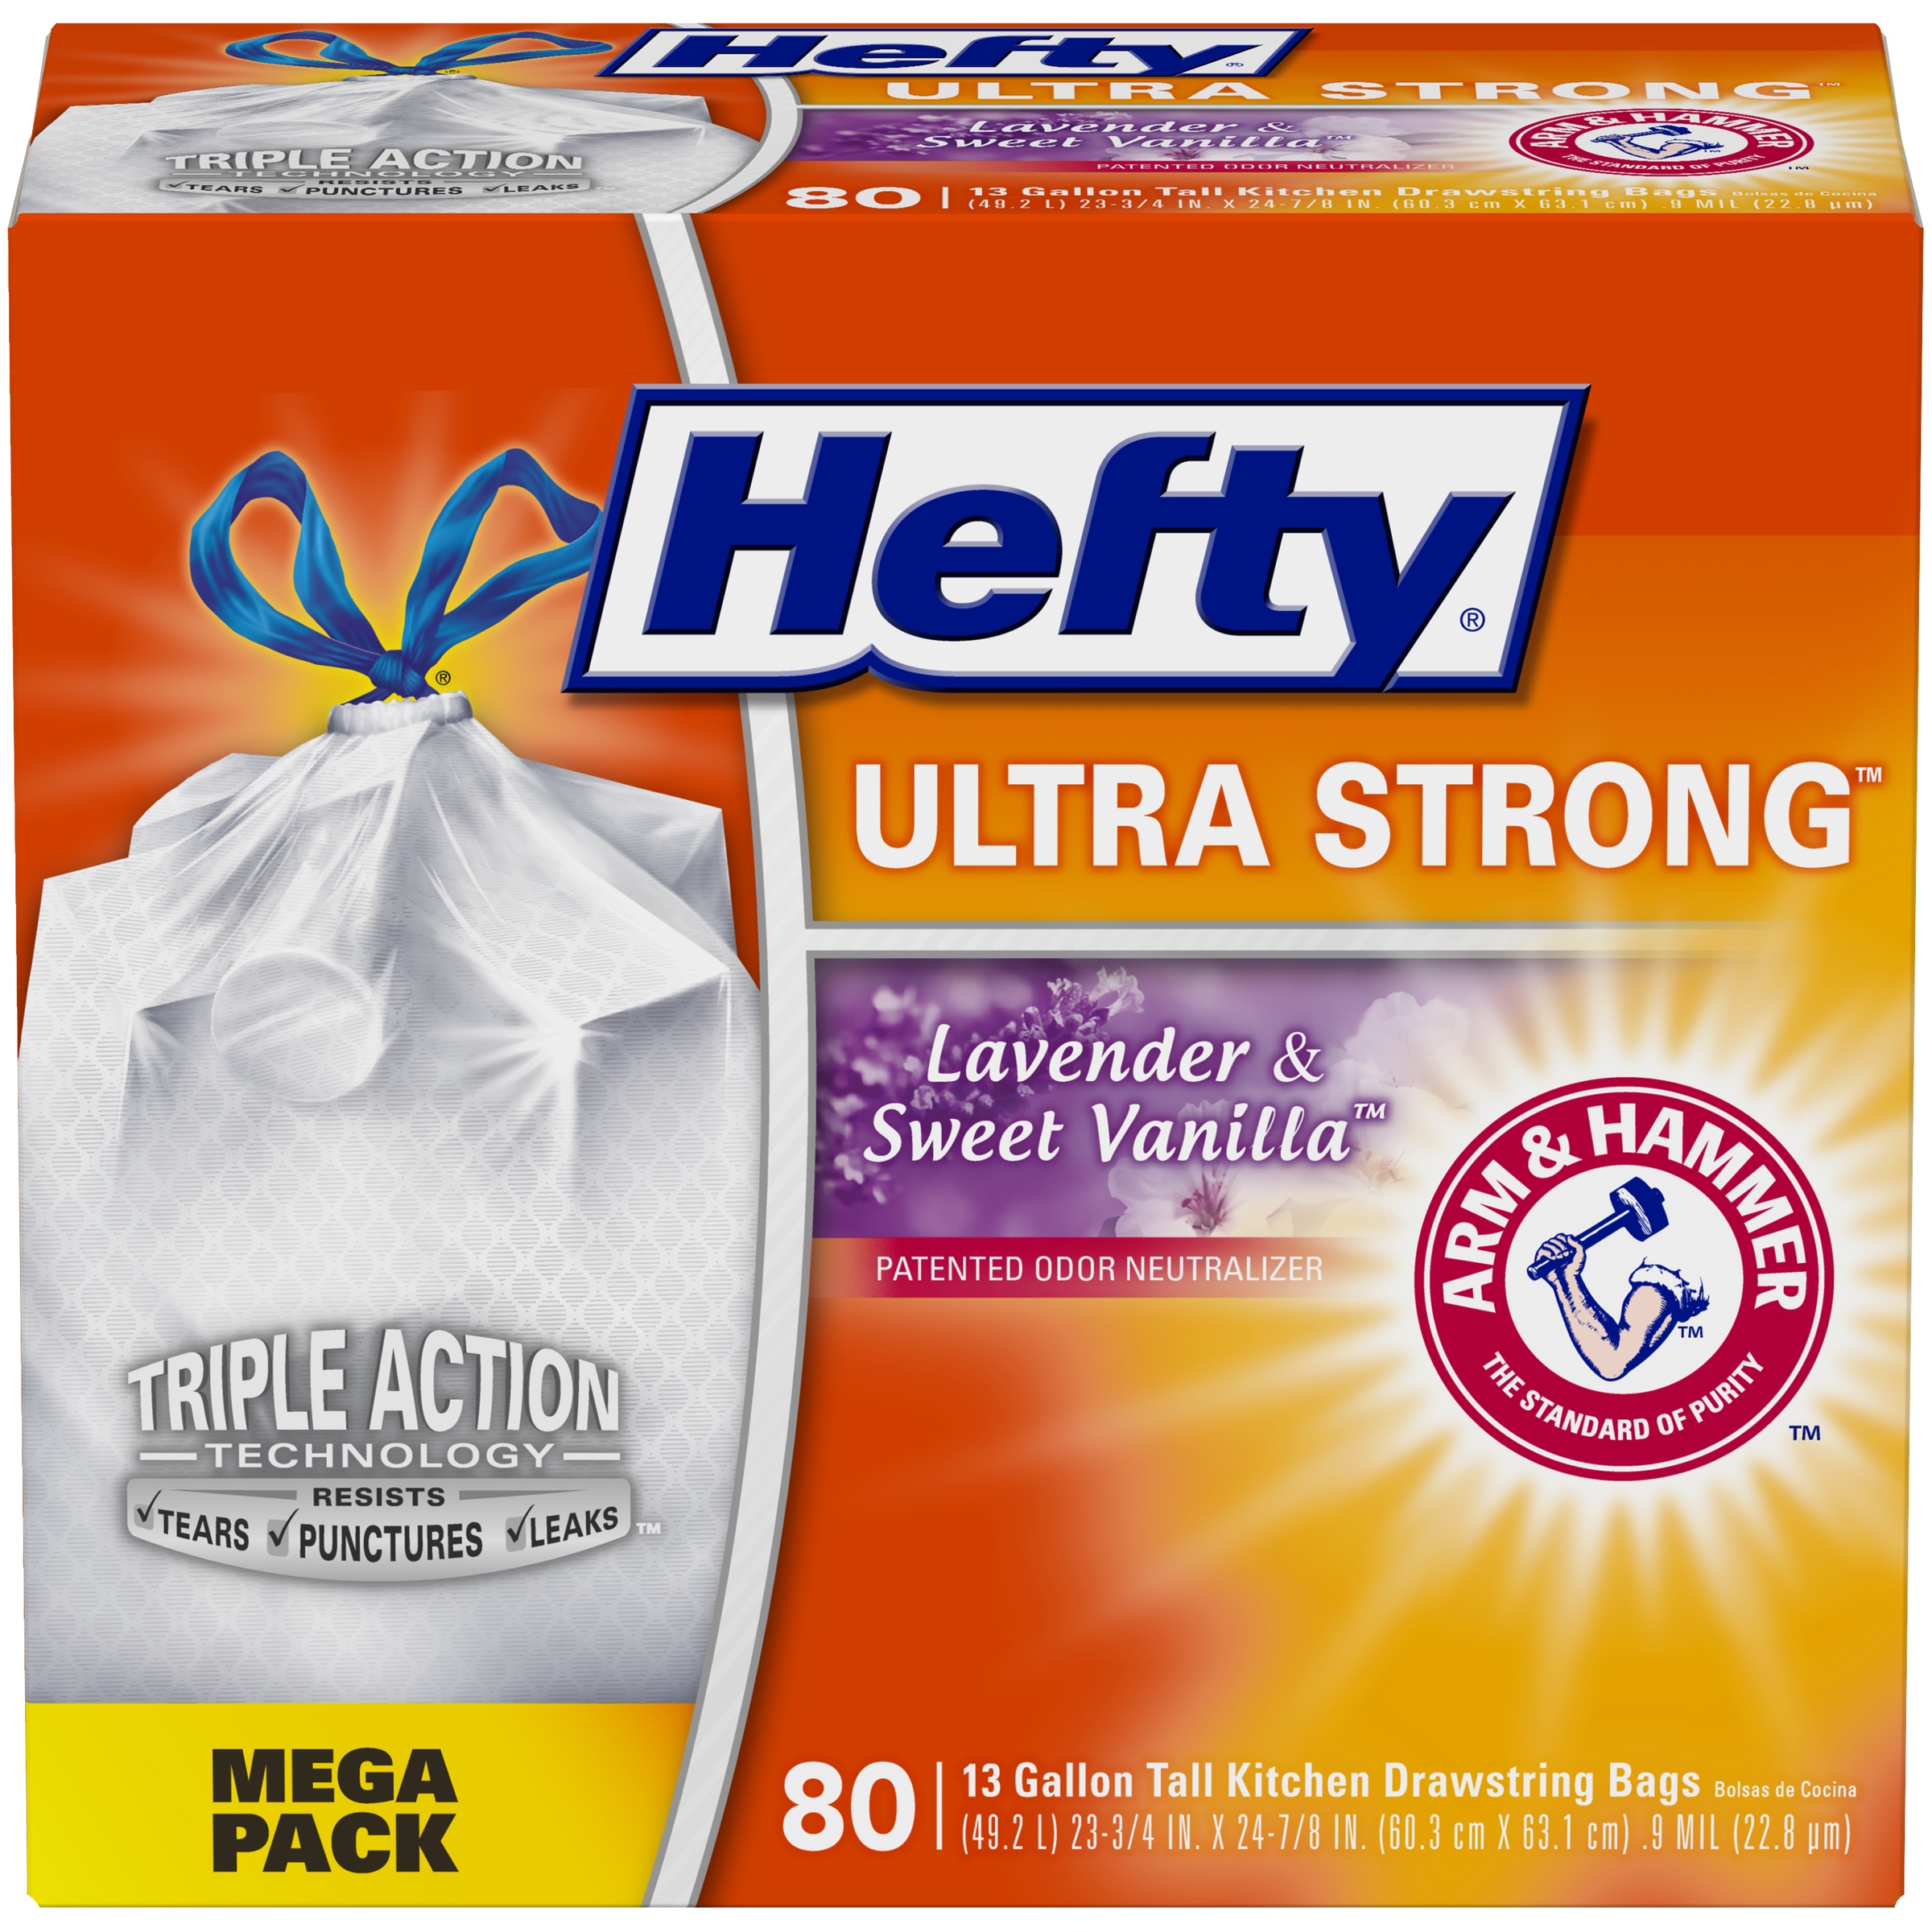 Hefty Ultra Strong Kitchen Trash Bags 13 Gallon Garbage Bags Scent Free 160count